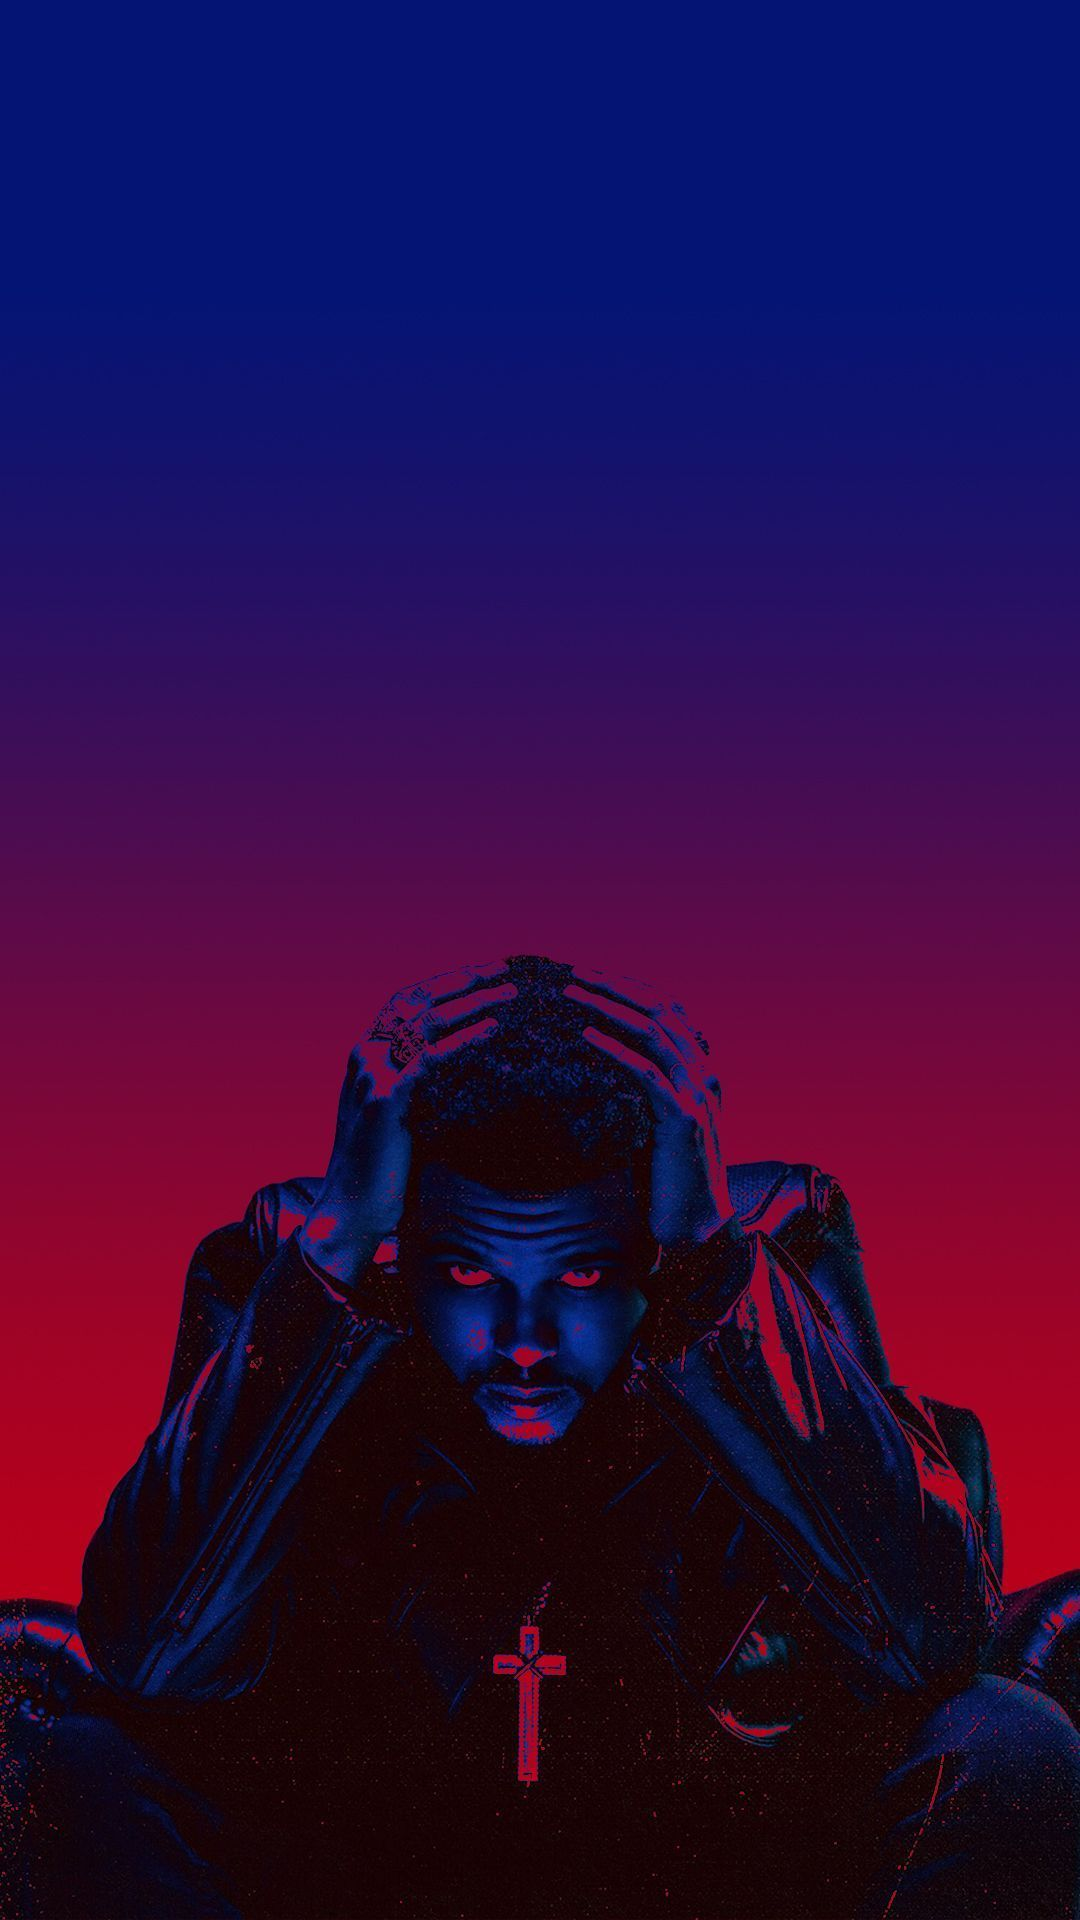 Ghetto Aesthetic Wallpaper Iphone Ghetto Aesthetic Ghetto Aesthetic Ghetto Aesthetic In 2020 The Weeknd Wallpaper Iphone Iphone 6 Plus Wallpaper Drake Wallpapers